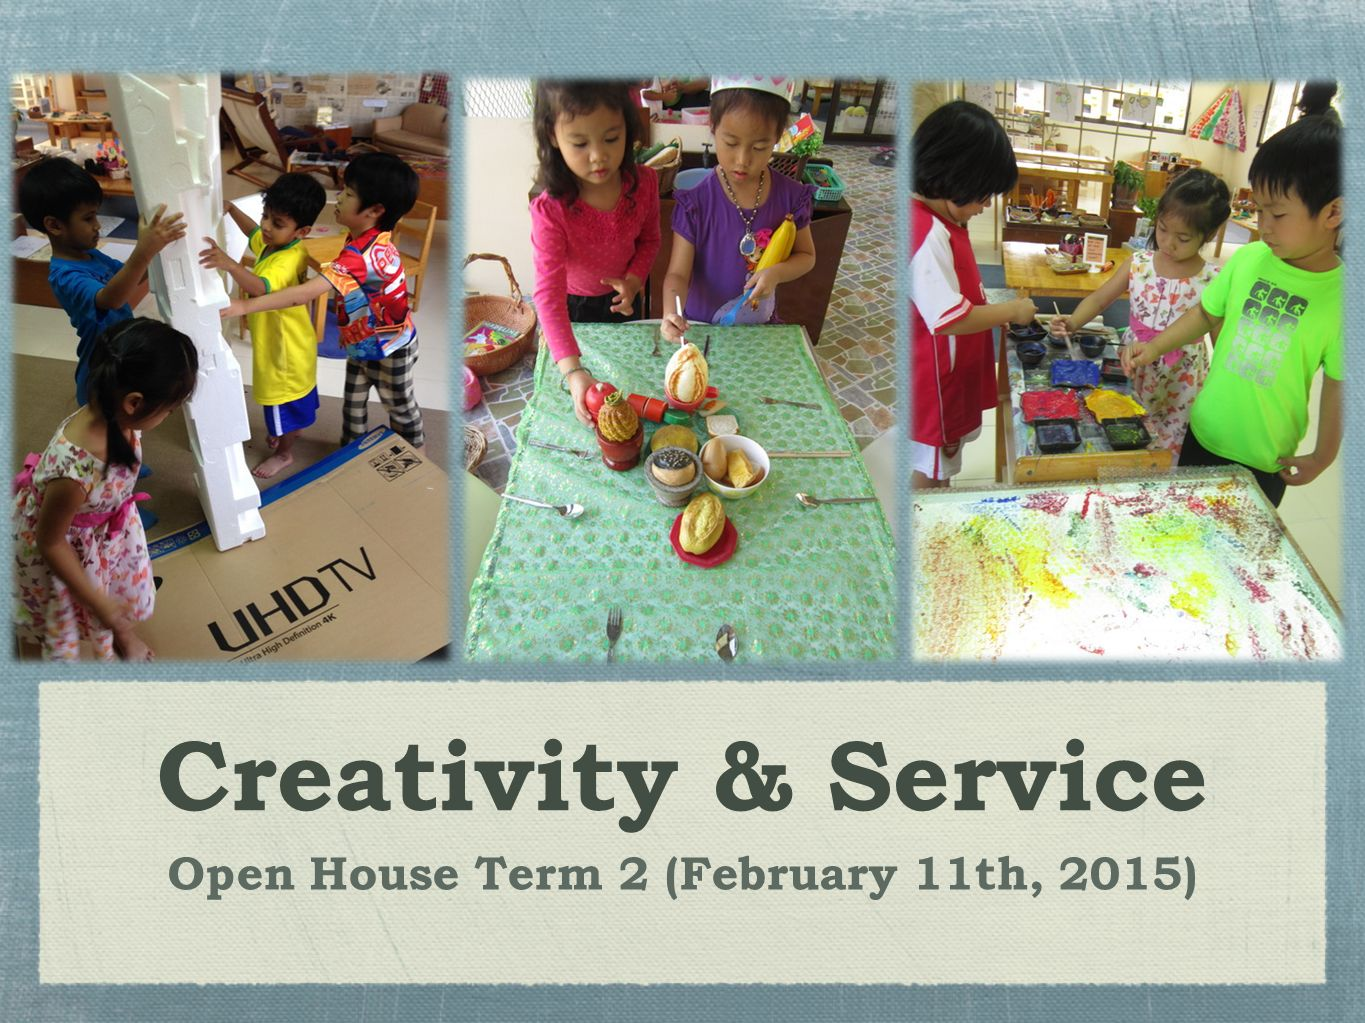 Open House Term 2 (February 11th, 2015)